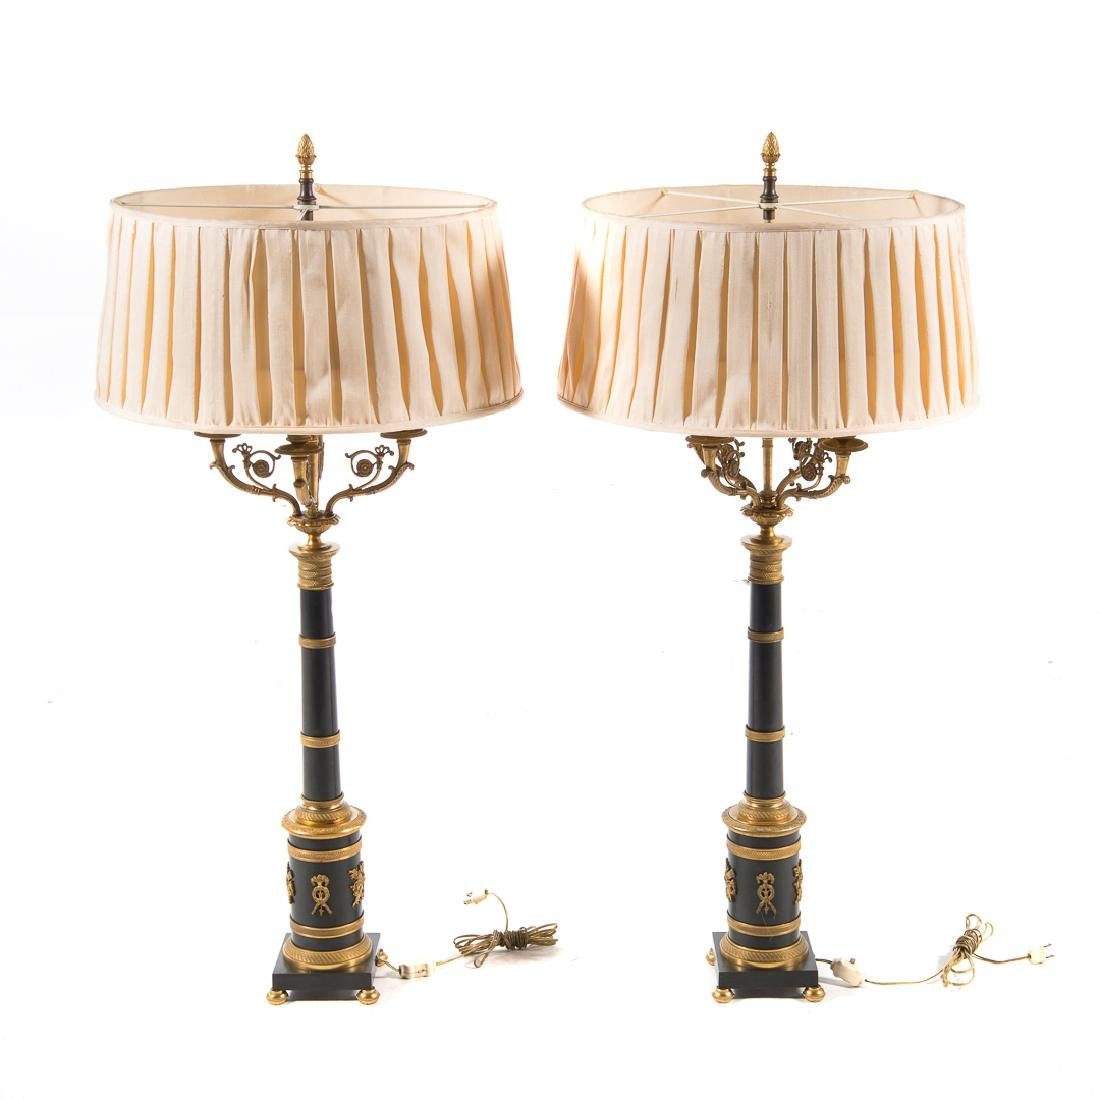 Pair French Empire style bronze lamps